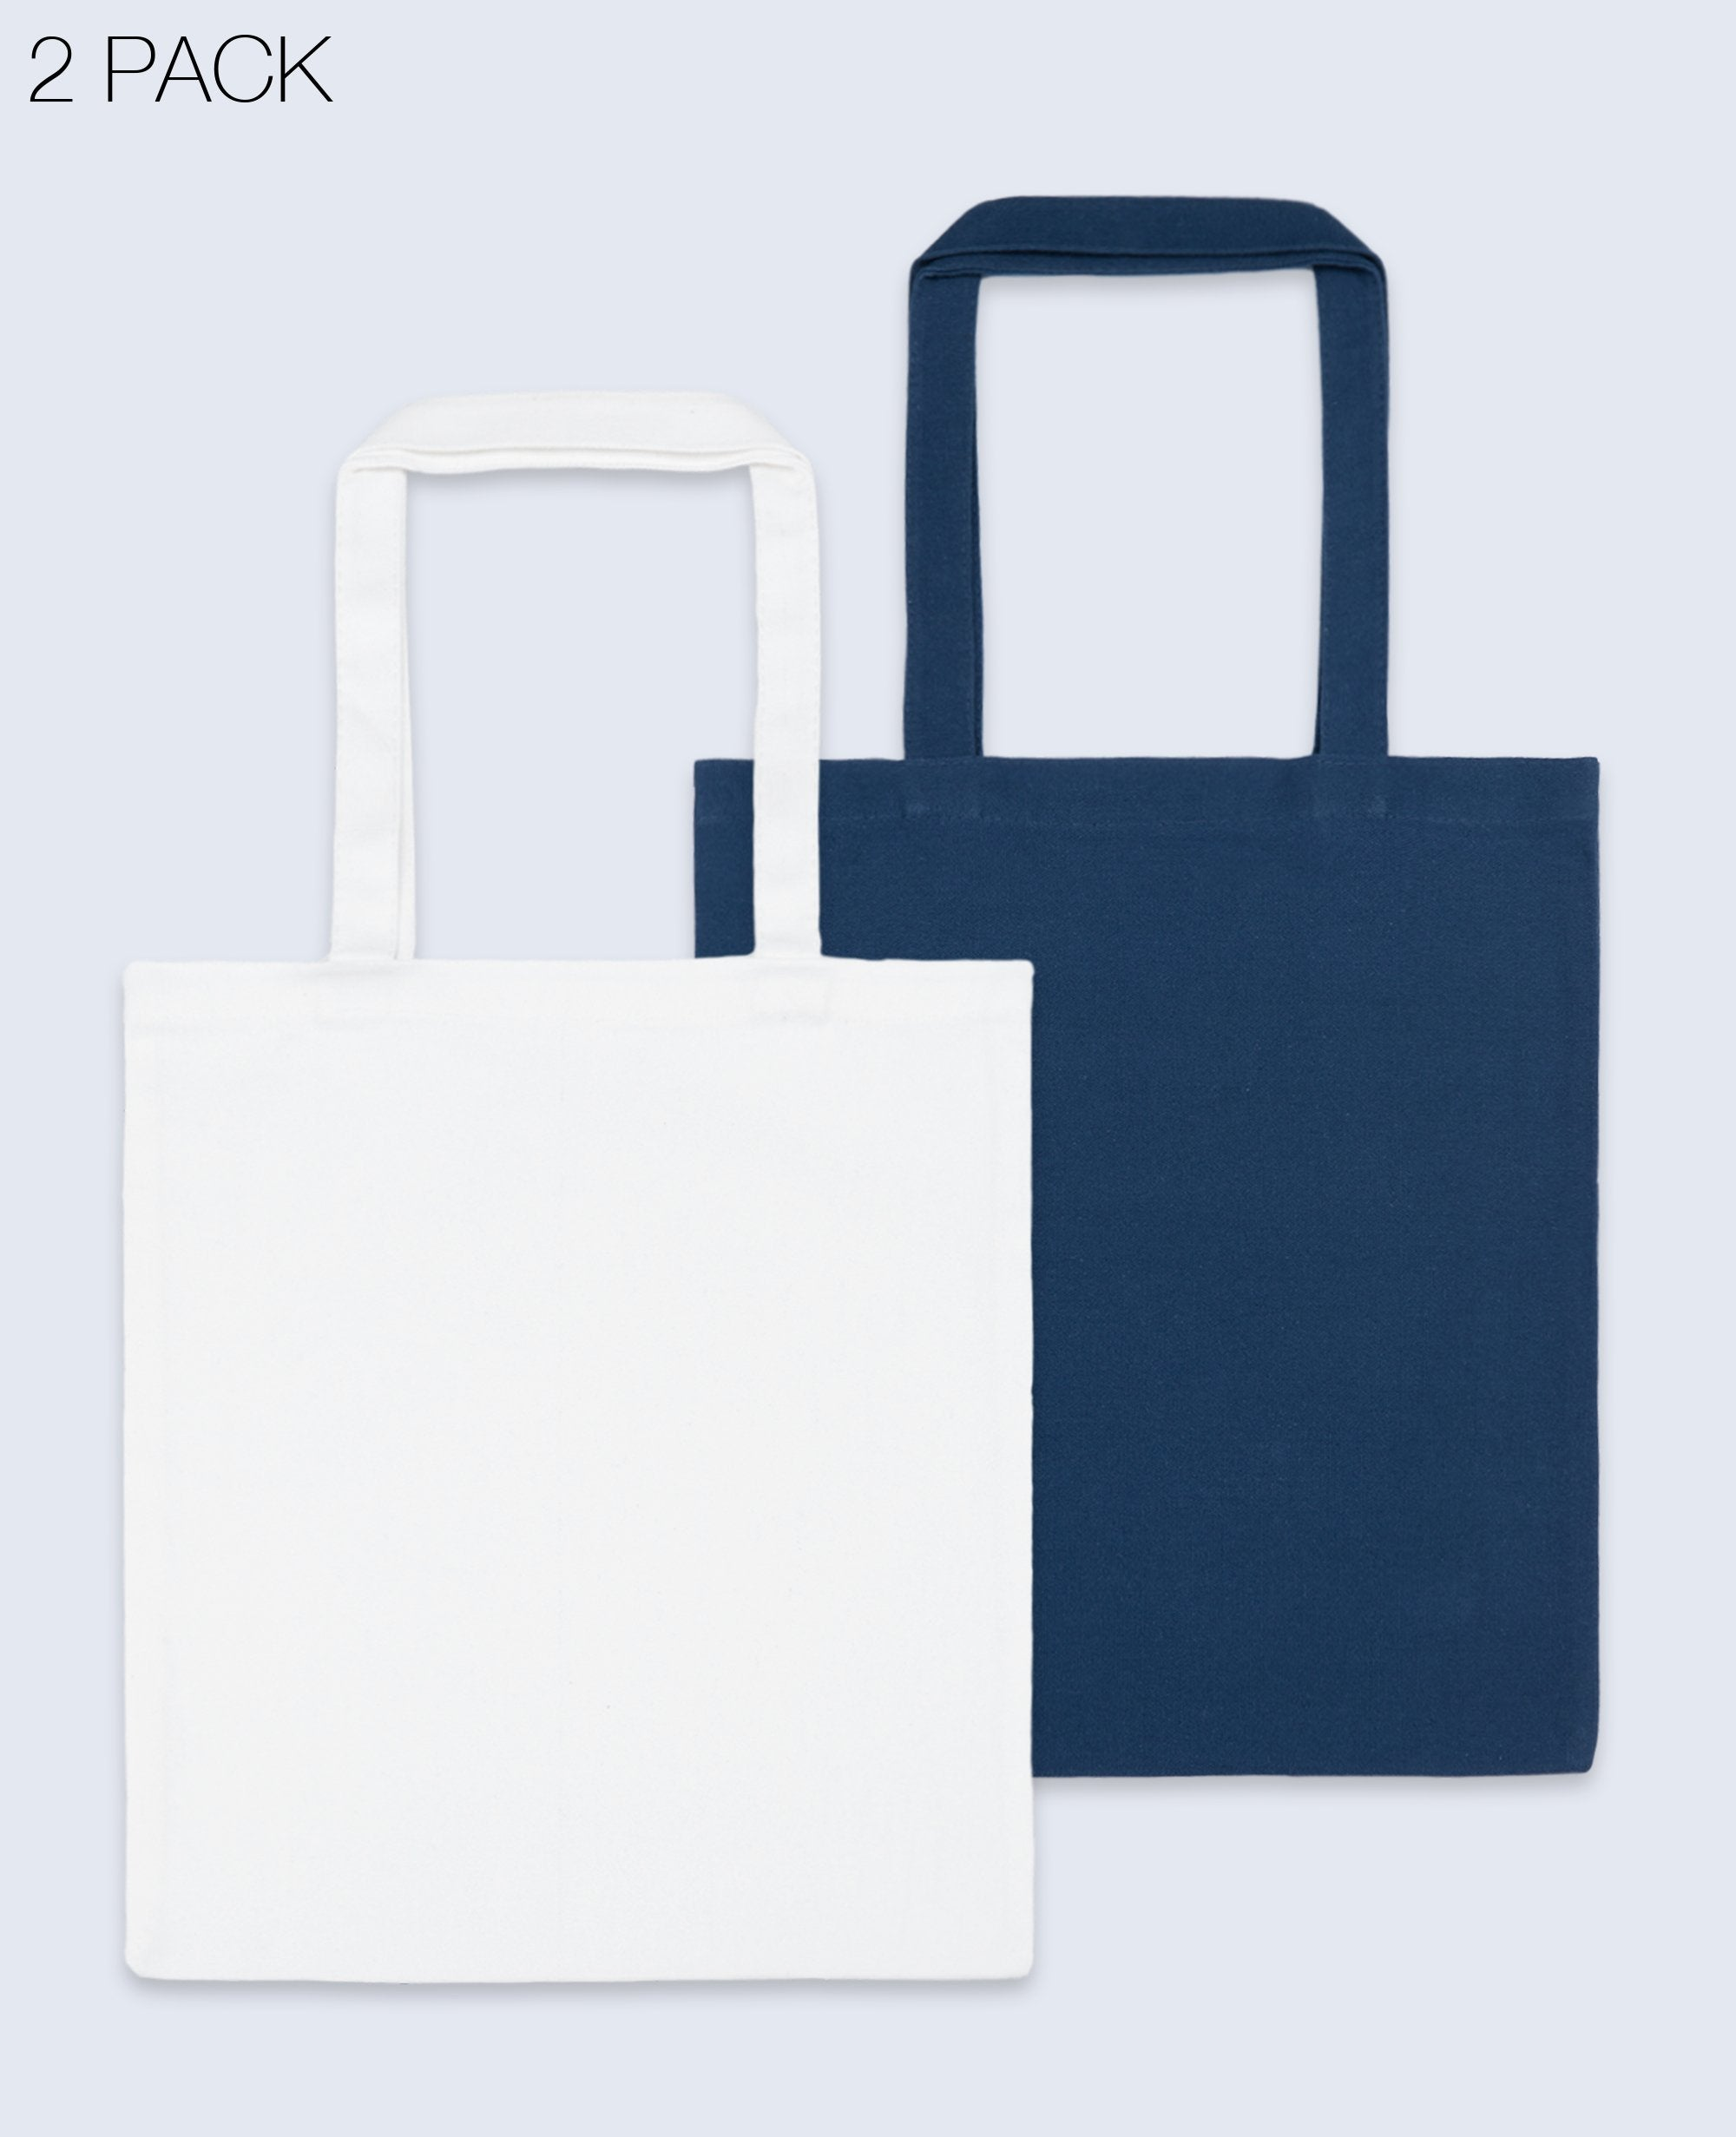 Long Handle Tote bag in White / Navy 2 pack - Tote Bag - BRANMA - BRANMA